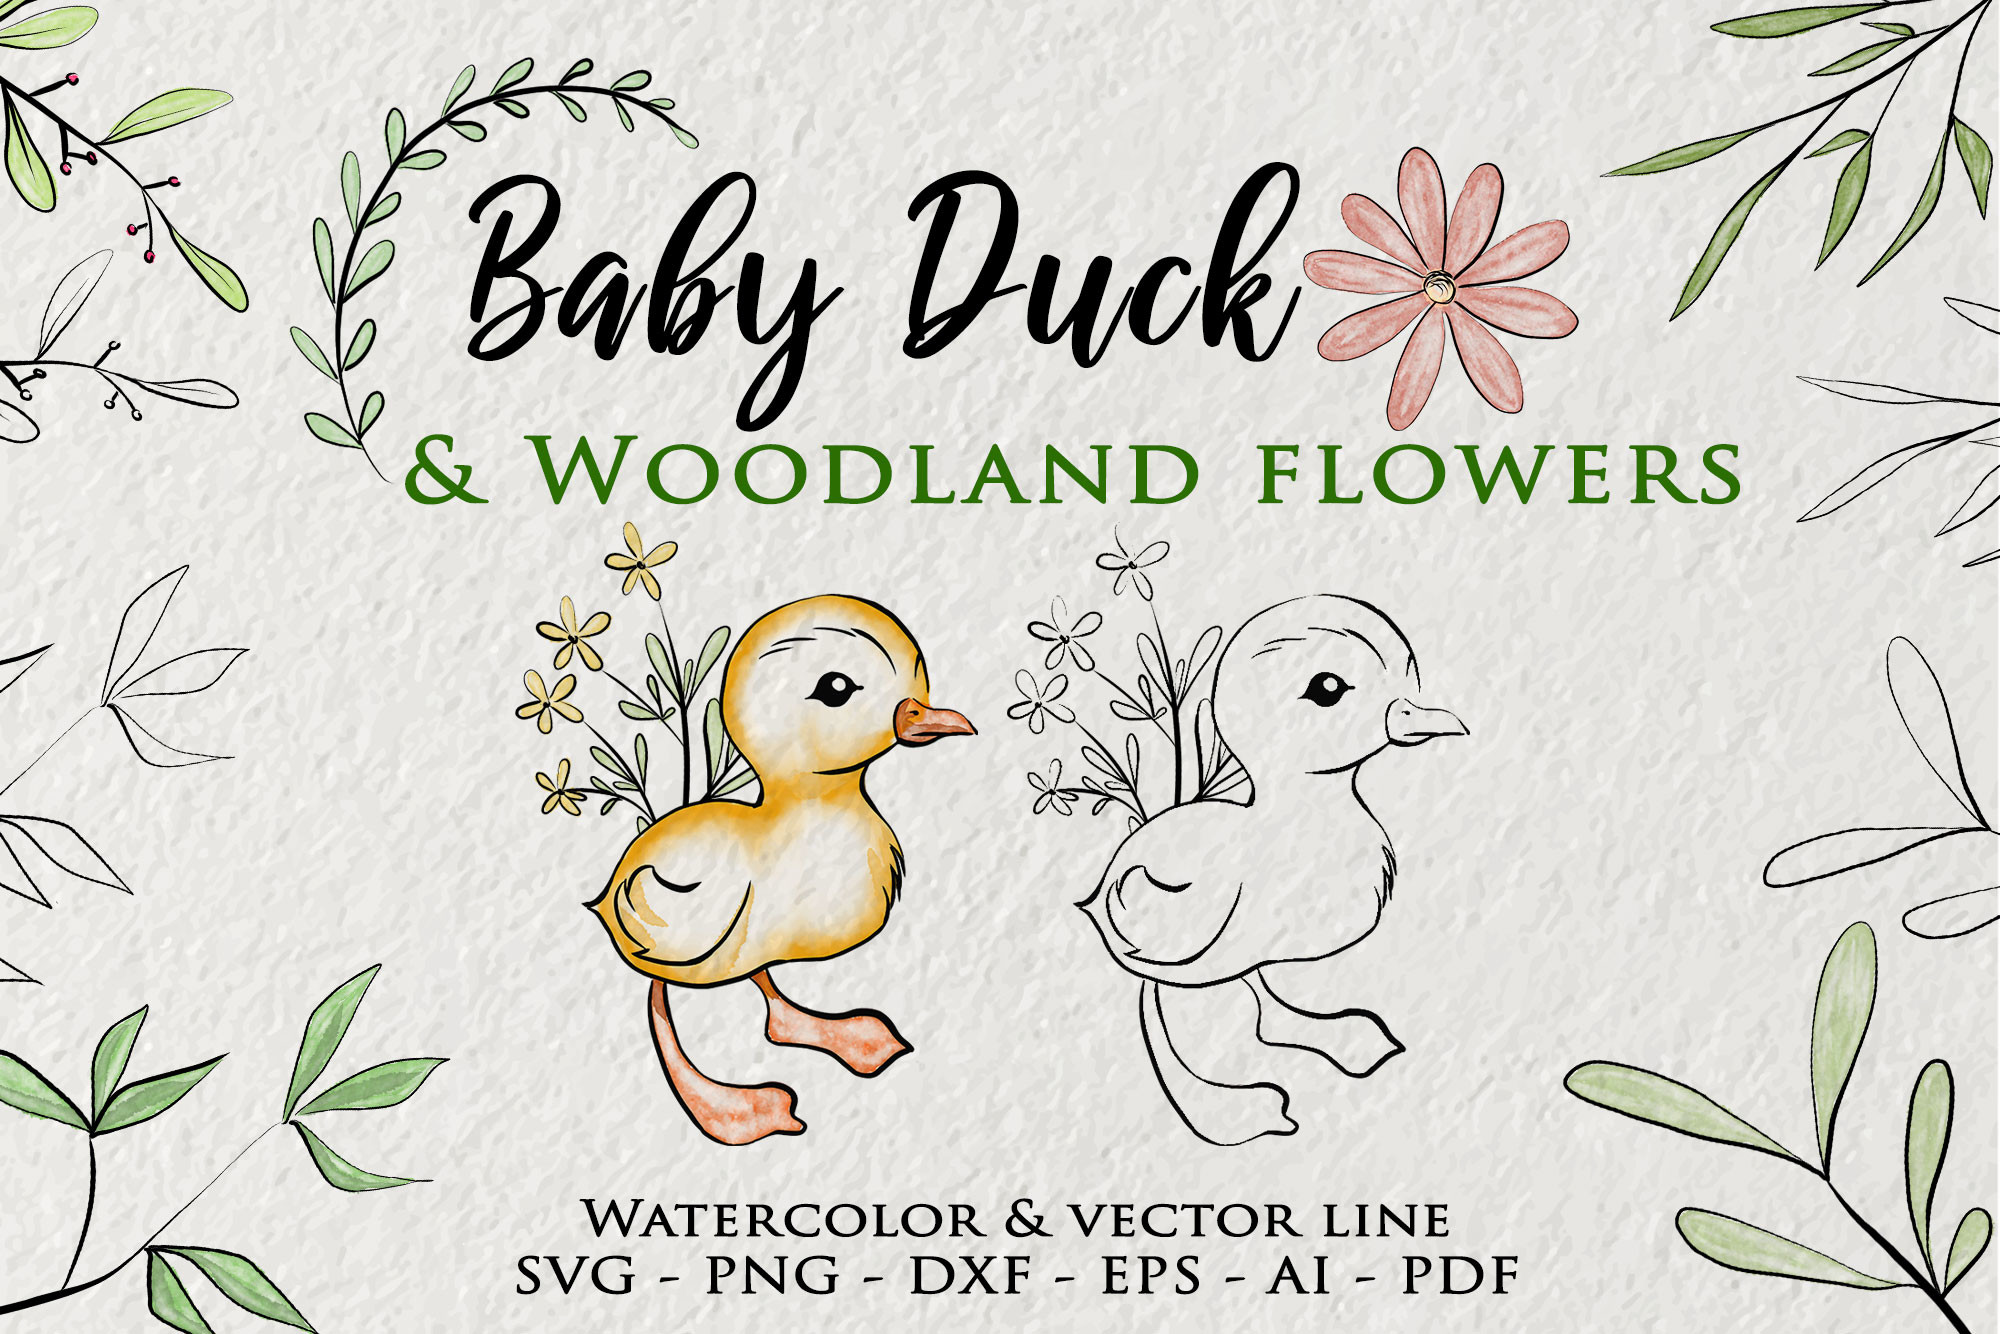 Baby Duck SVG Watercolor Woodland Flower SVG File